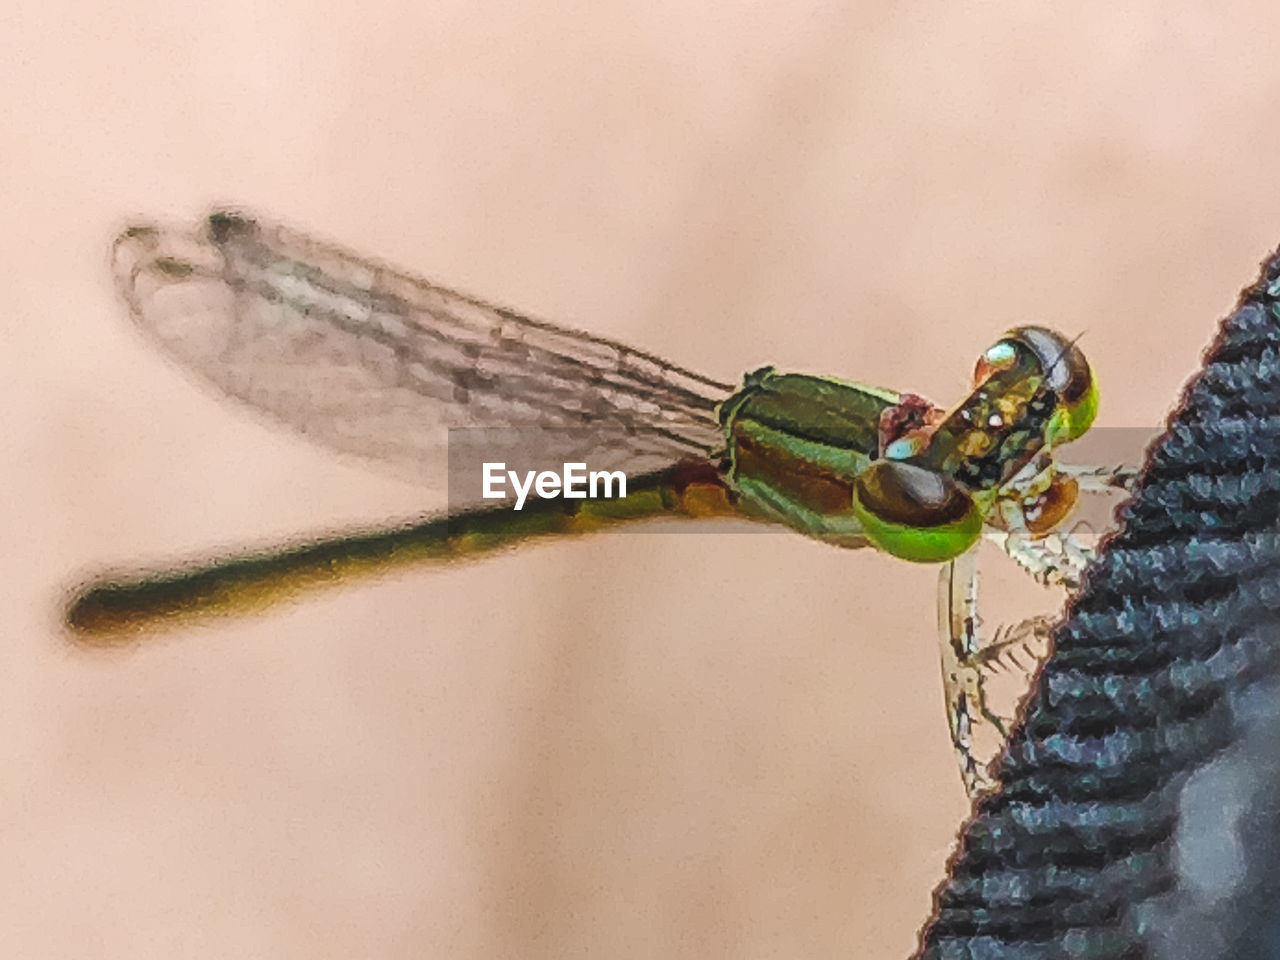 close-up, insect, invertebrate, one animal, animal themes, animals in the wild, animal wildlife, animal, day, animal wing, nature, dragonfly, outdoors, focus on foreground, human body part, one person, plant, green color, selective focus, body part